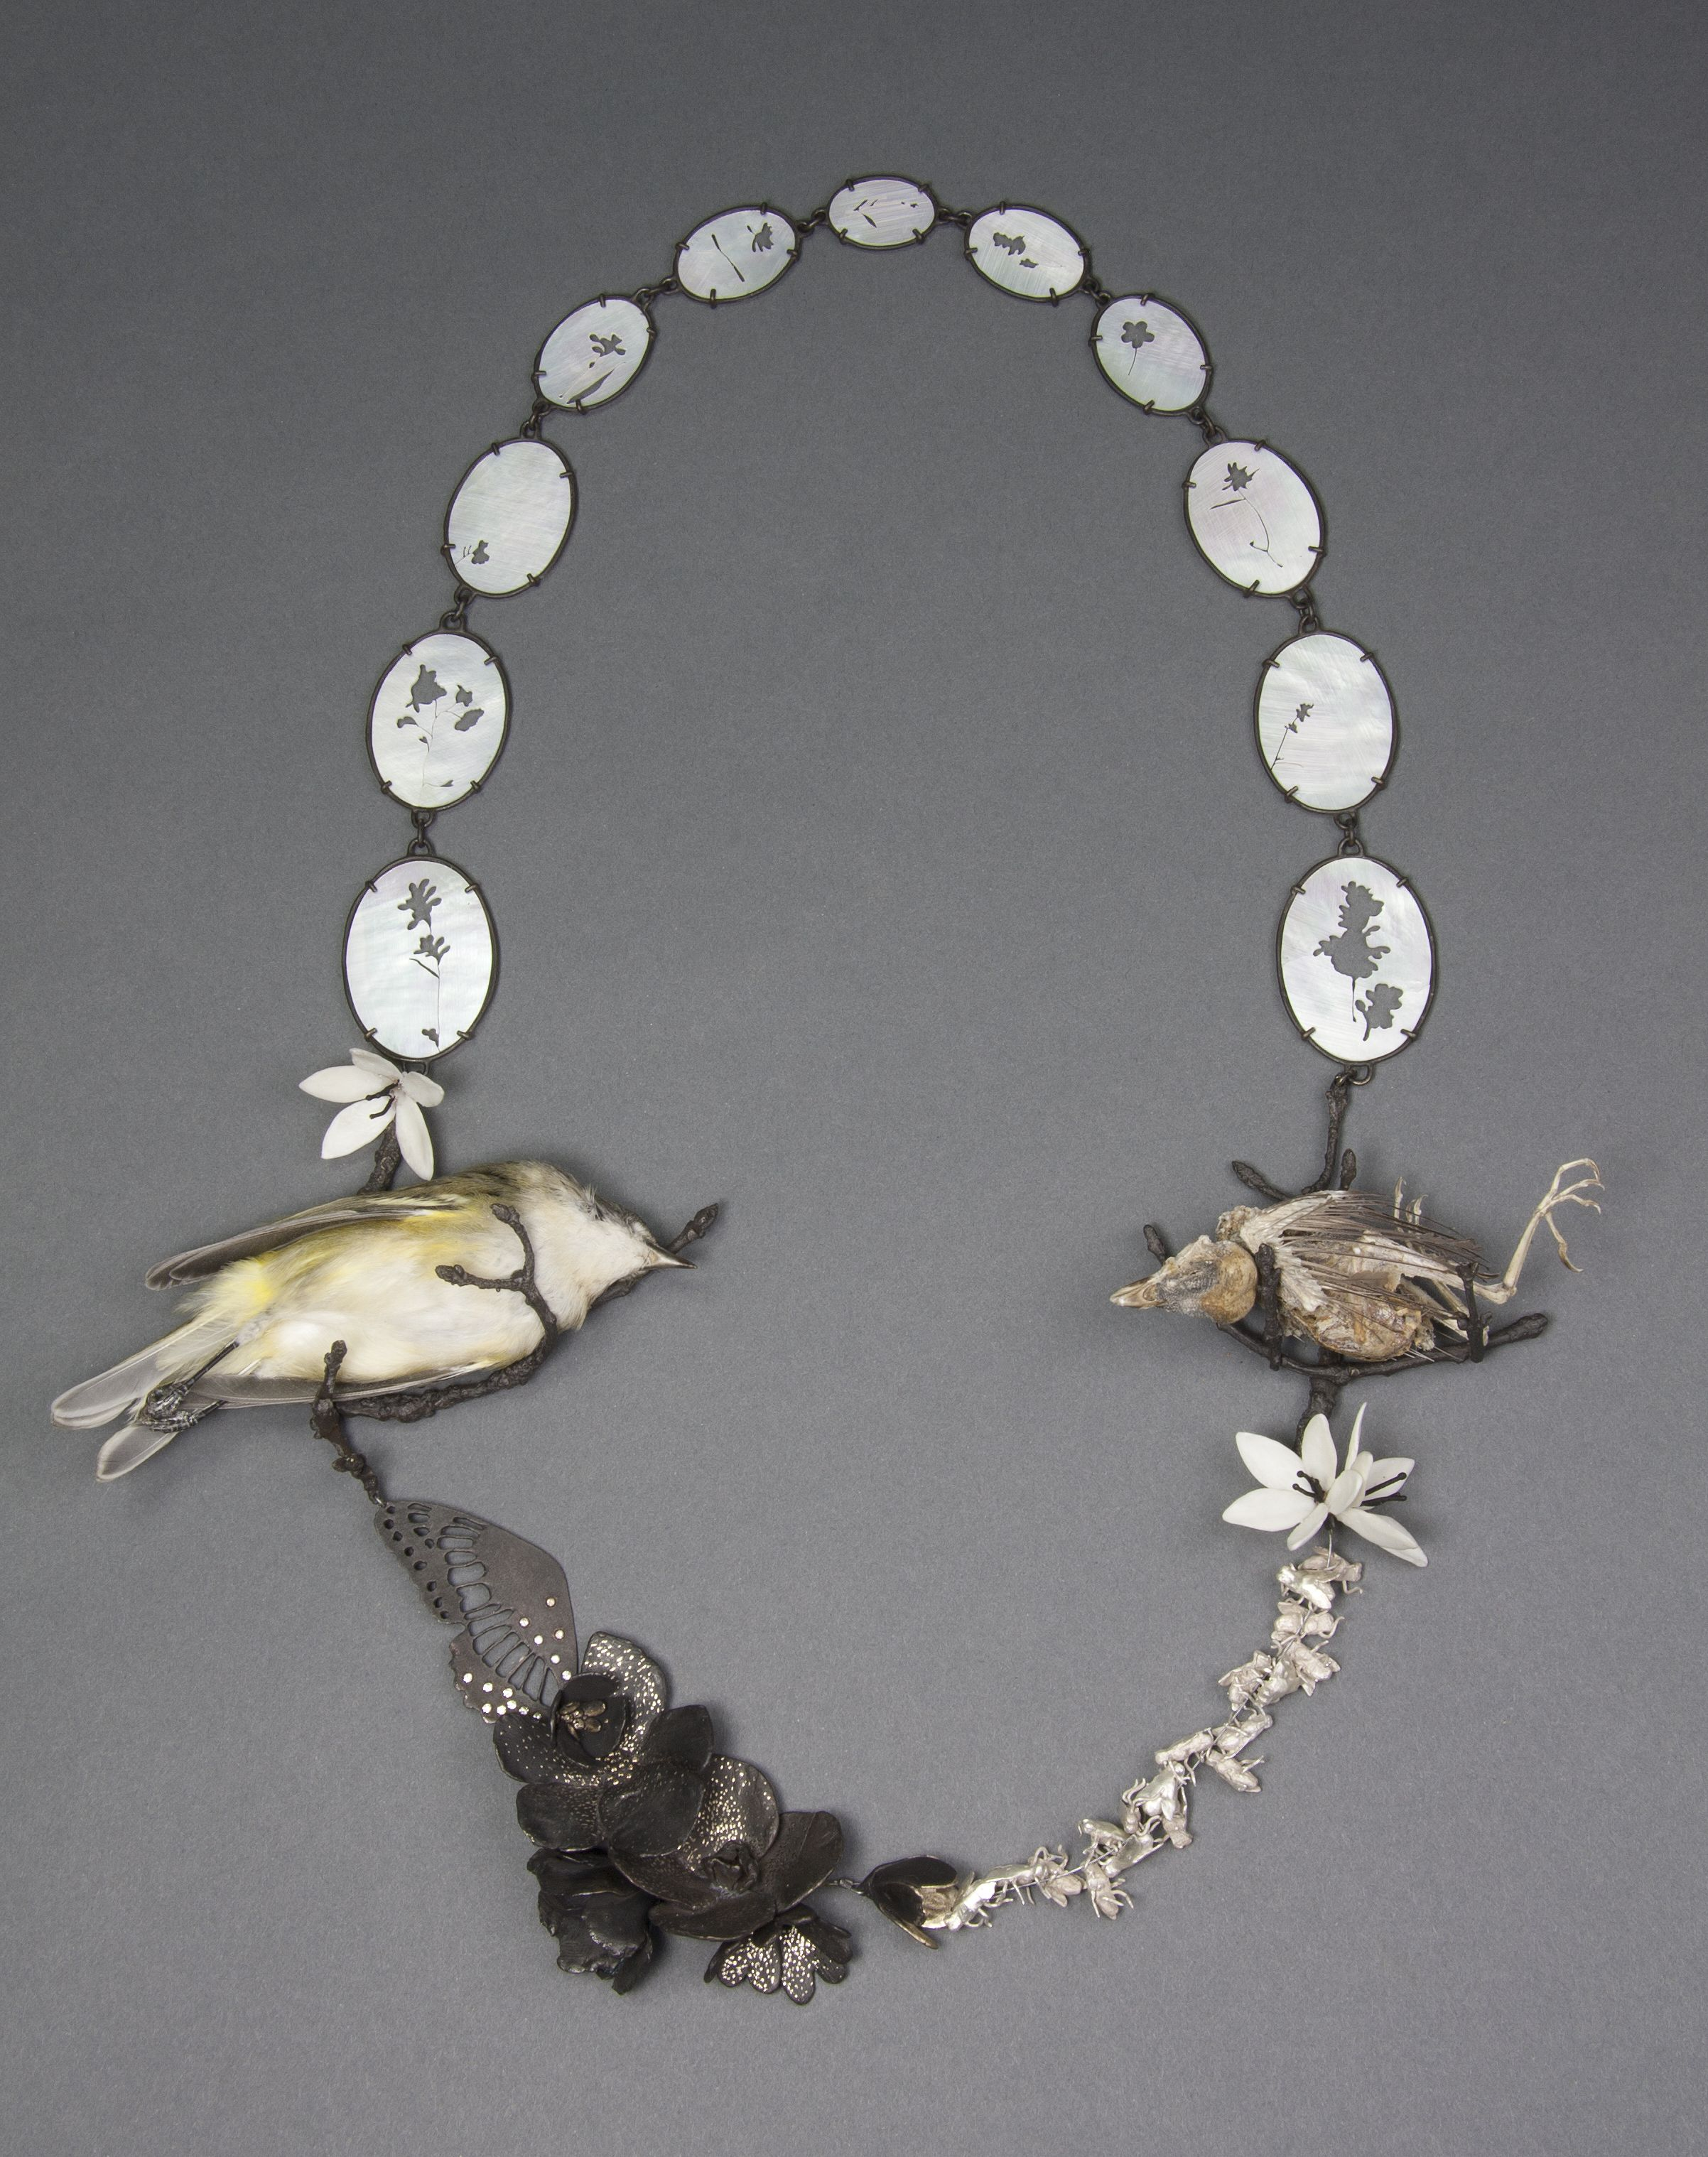 """Two Birds    Kelly Jean Conroy, 2013  20"""" x 8"""" x 1.5""""  Sterling silver, bronze, copper, bone, mother-of-pearl, cubic zirconia, preserves vireo, sparrow skeleton"""